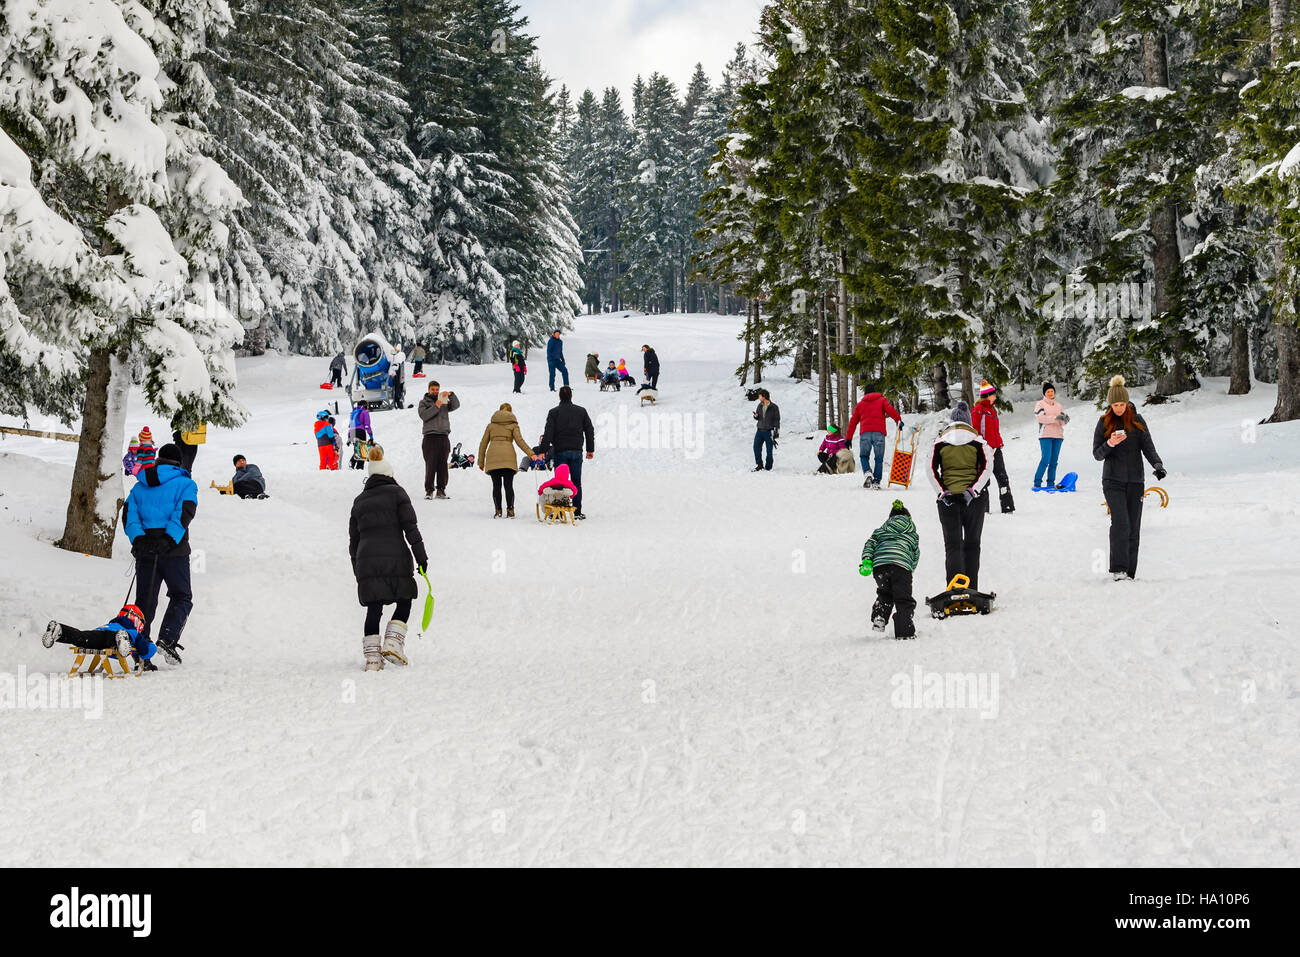 Pohorje, Slovenia - November 13, 2016: Children with parents sledding and having fun on first winter snow in the - Stock Image